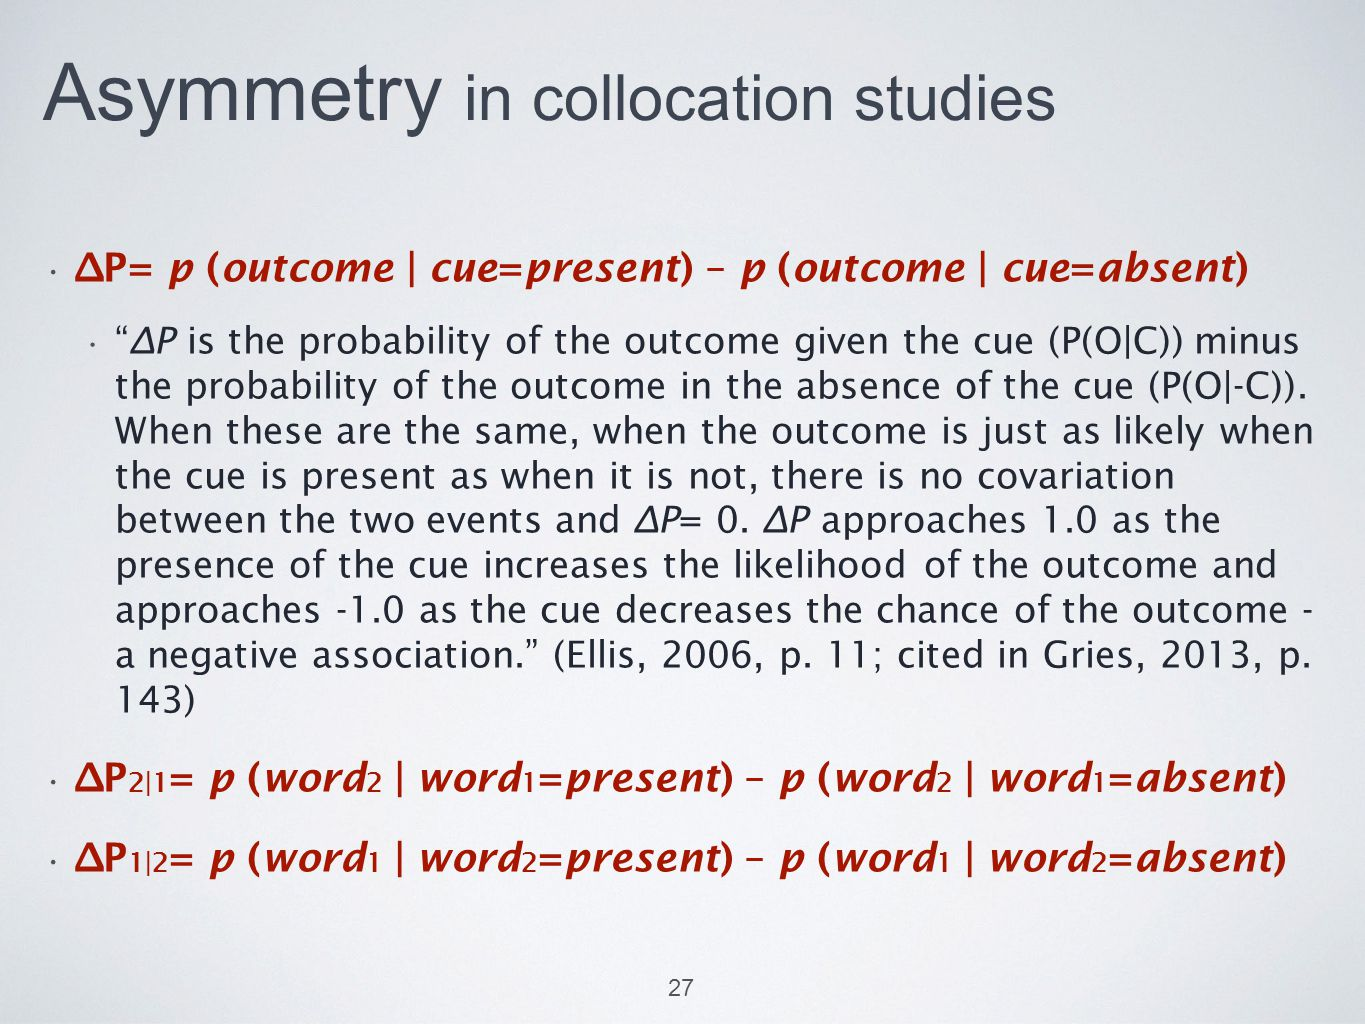 Asymmetry in collocation studies ∆P= p (outcome | cue=present) – p (outcome | cue=absent) ∆P is the probability of the outcome given the cue (P(O|C)) minus the probability of the outcome in the absence of the cue (P(O|-C)).